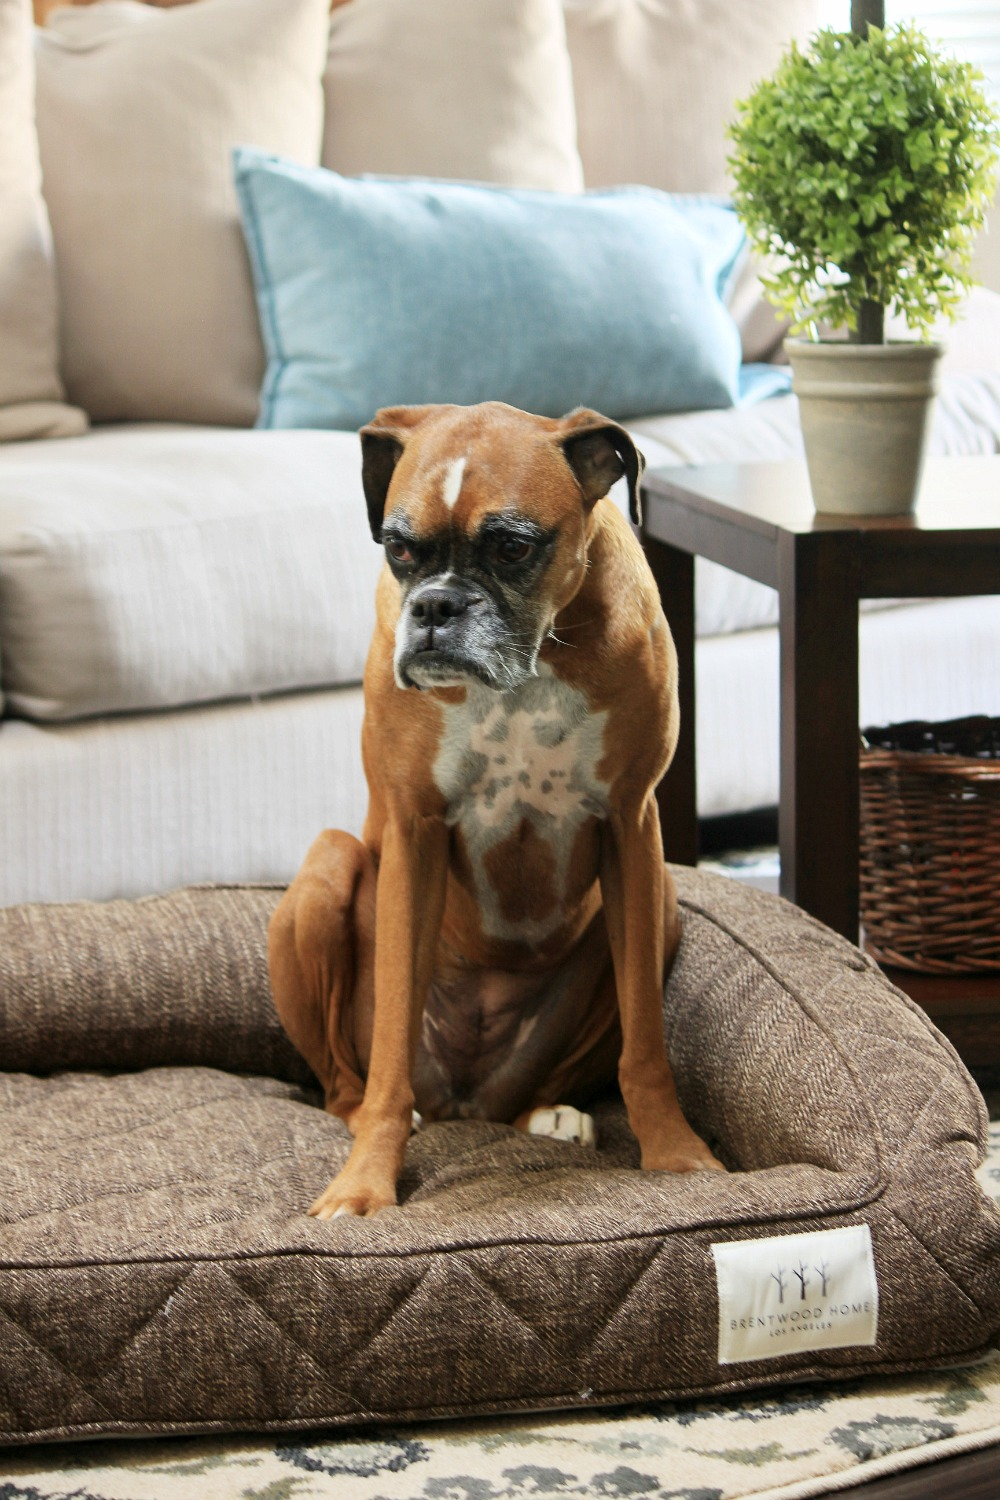 Dealing With Shedding Dogs Tips For A Clean Home The